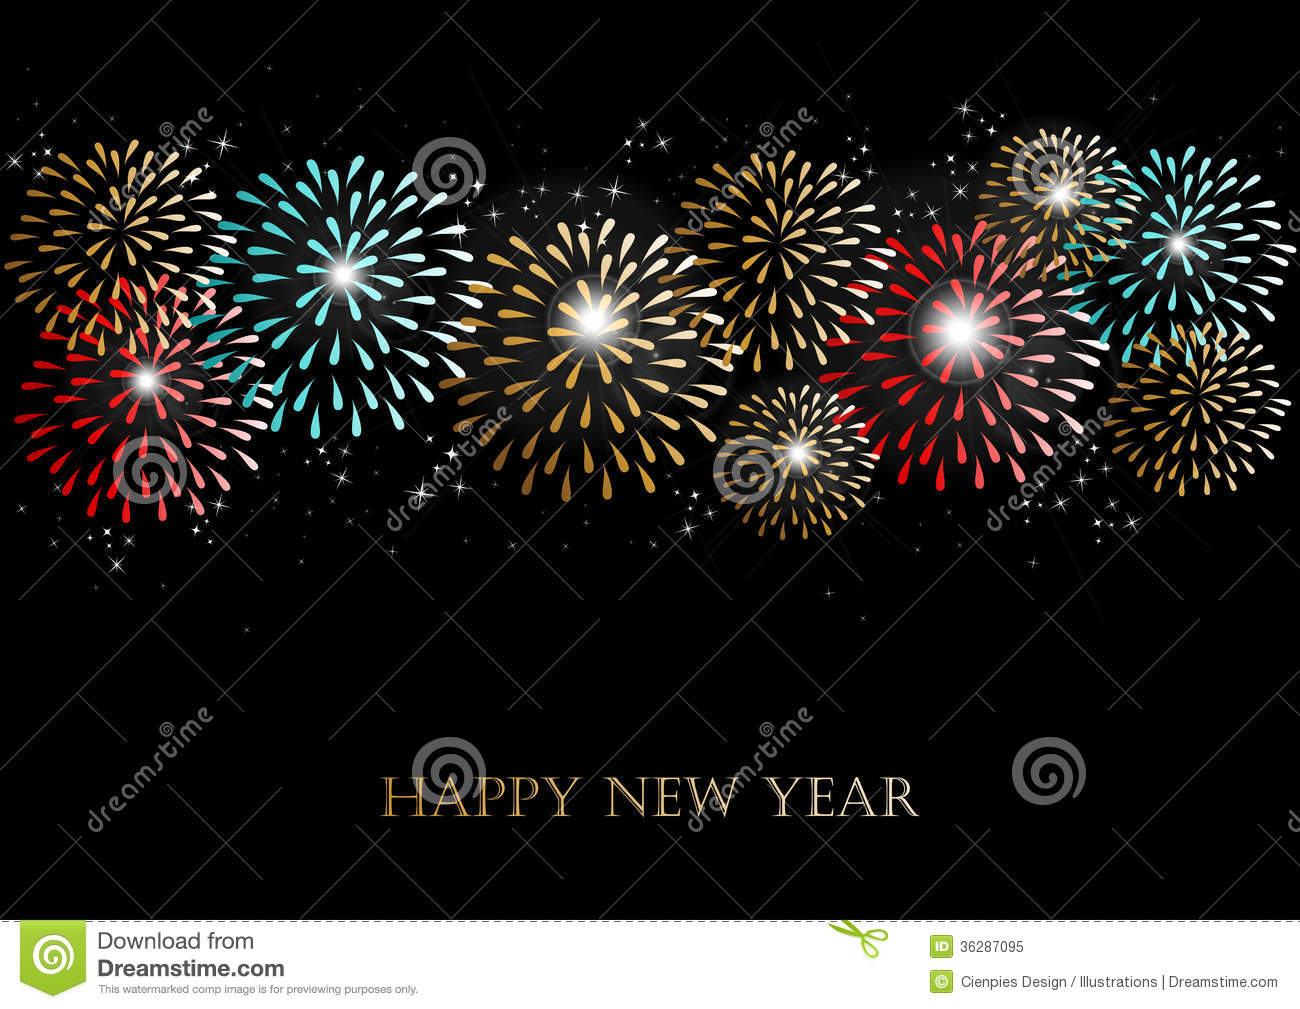 happy new year 2014 fireworks background royalty free